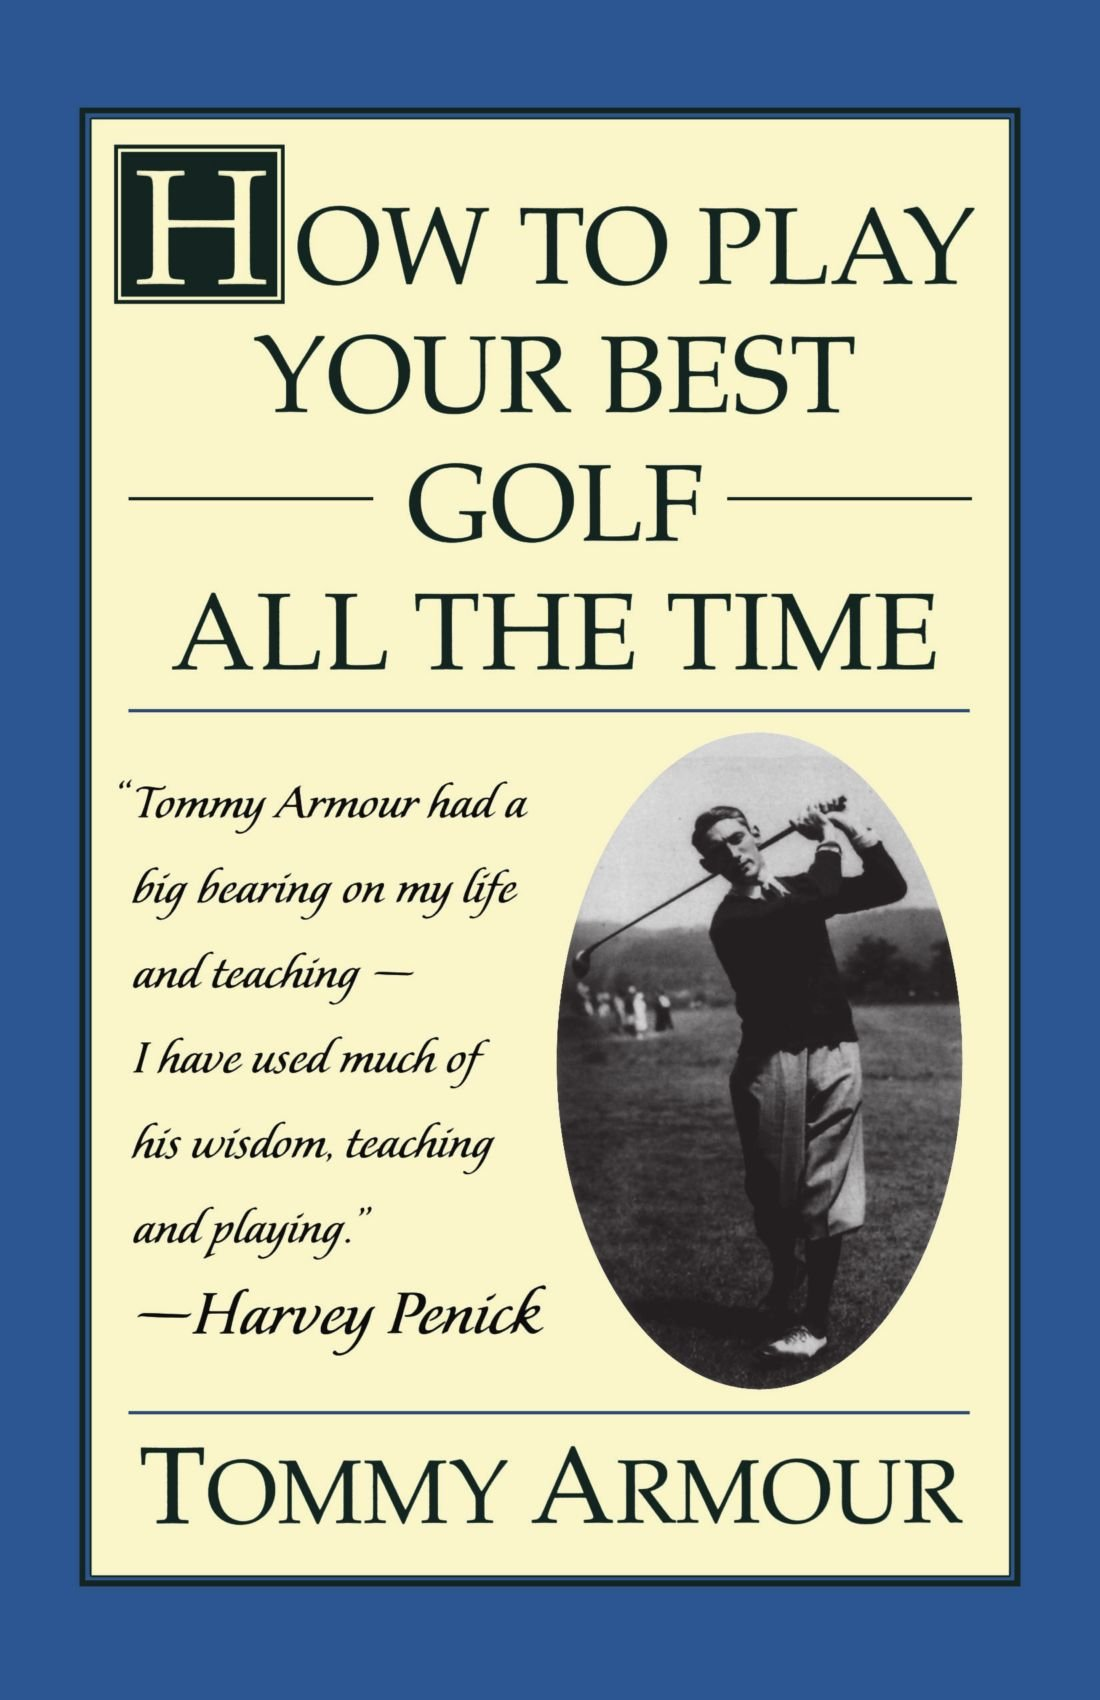 How to Play Your Best Golf All the Time